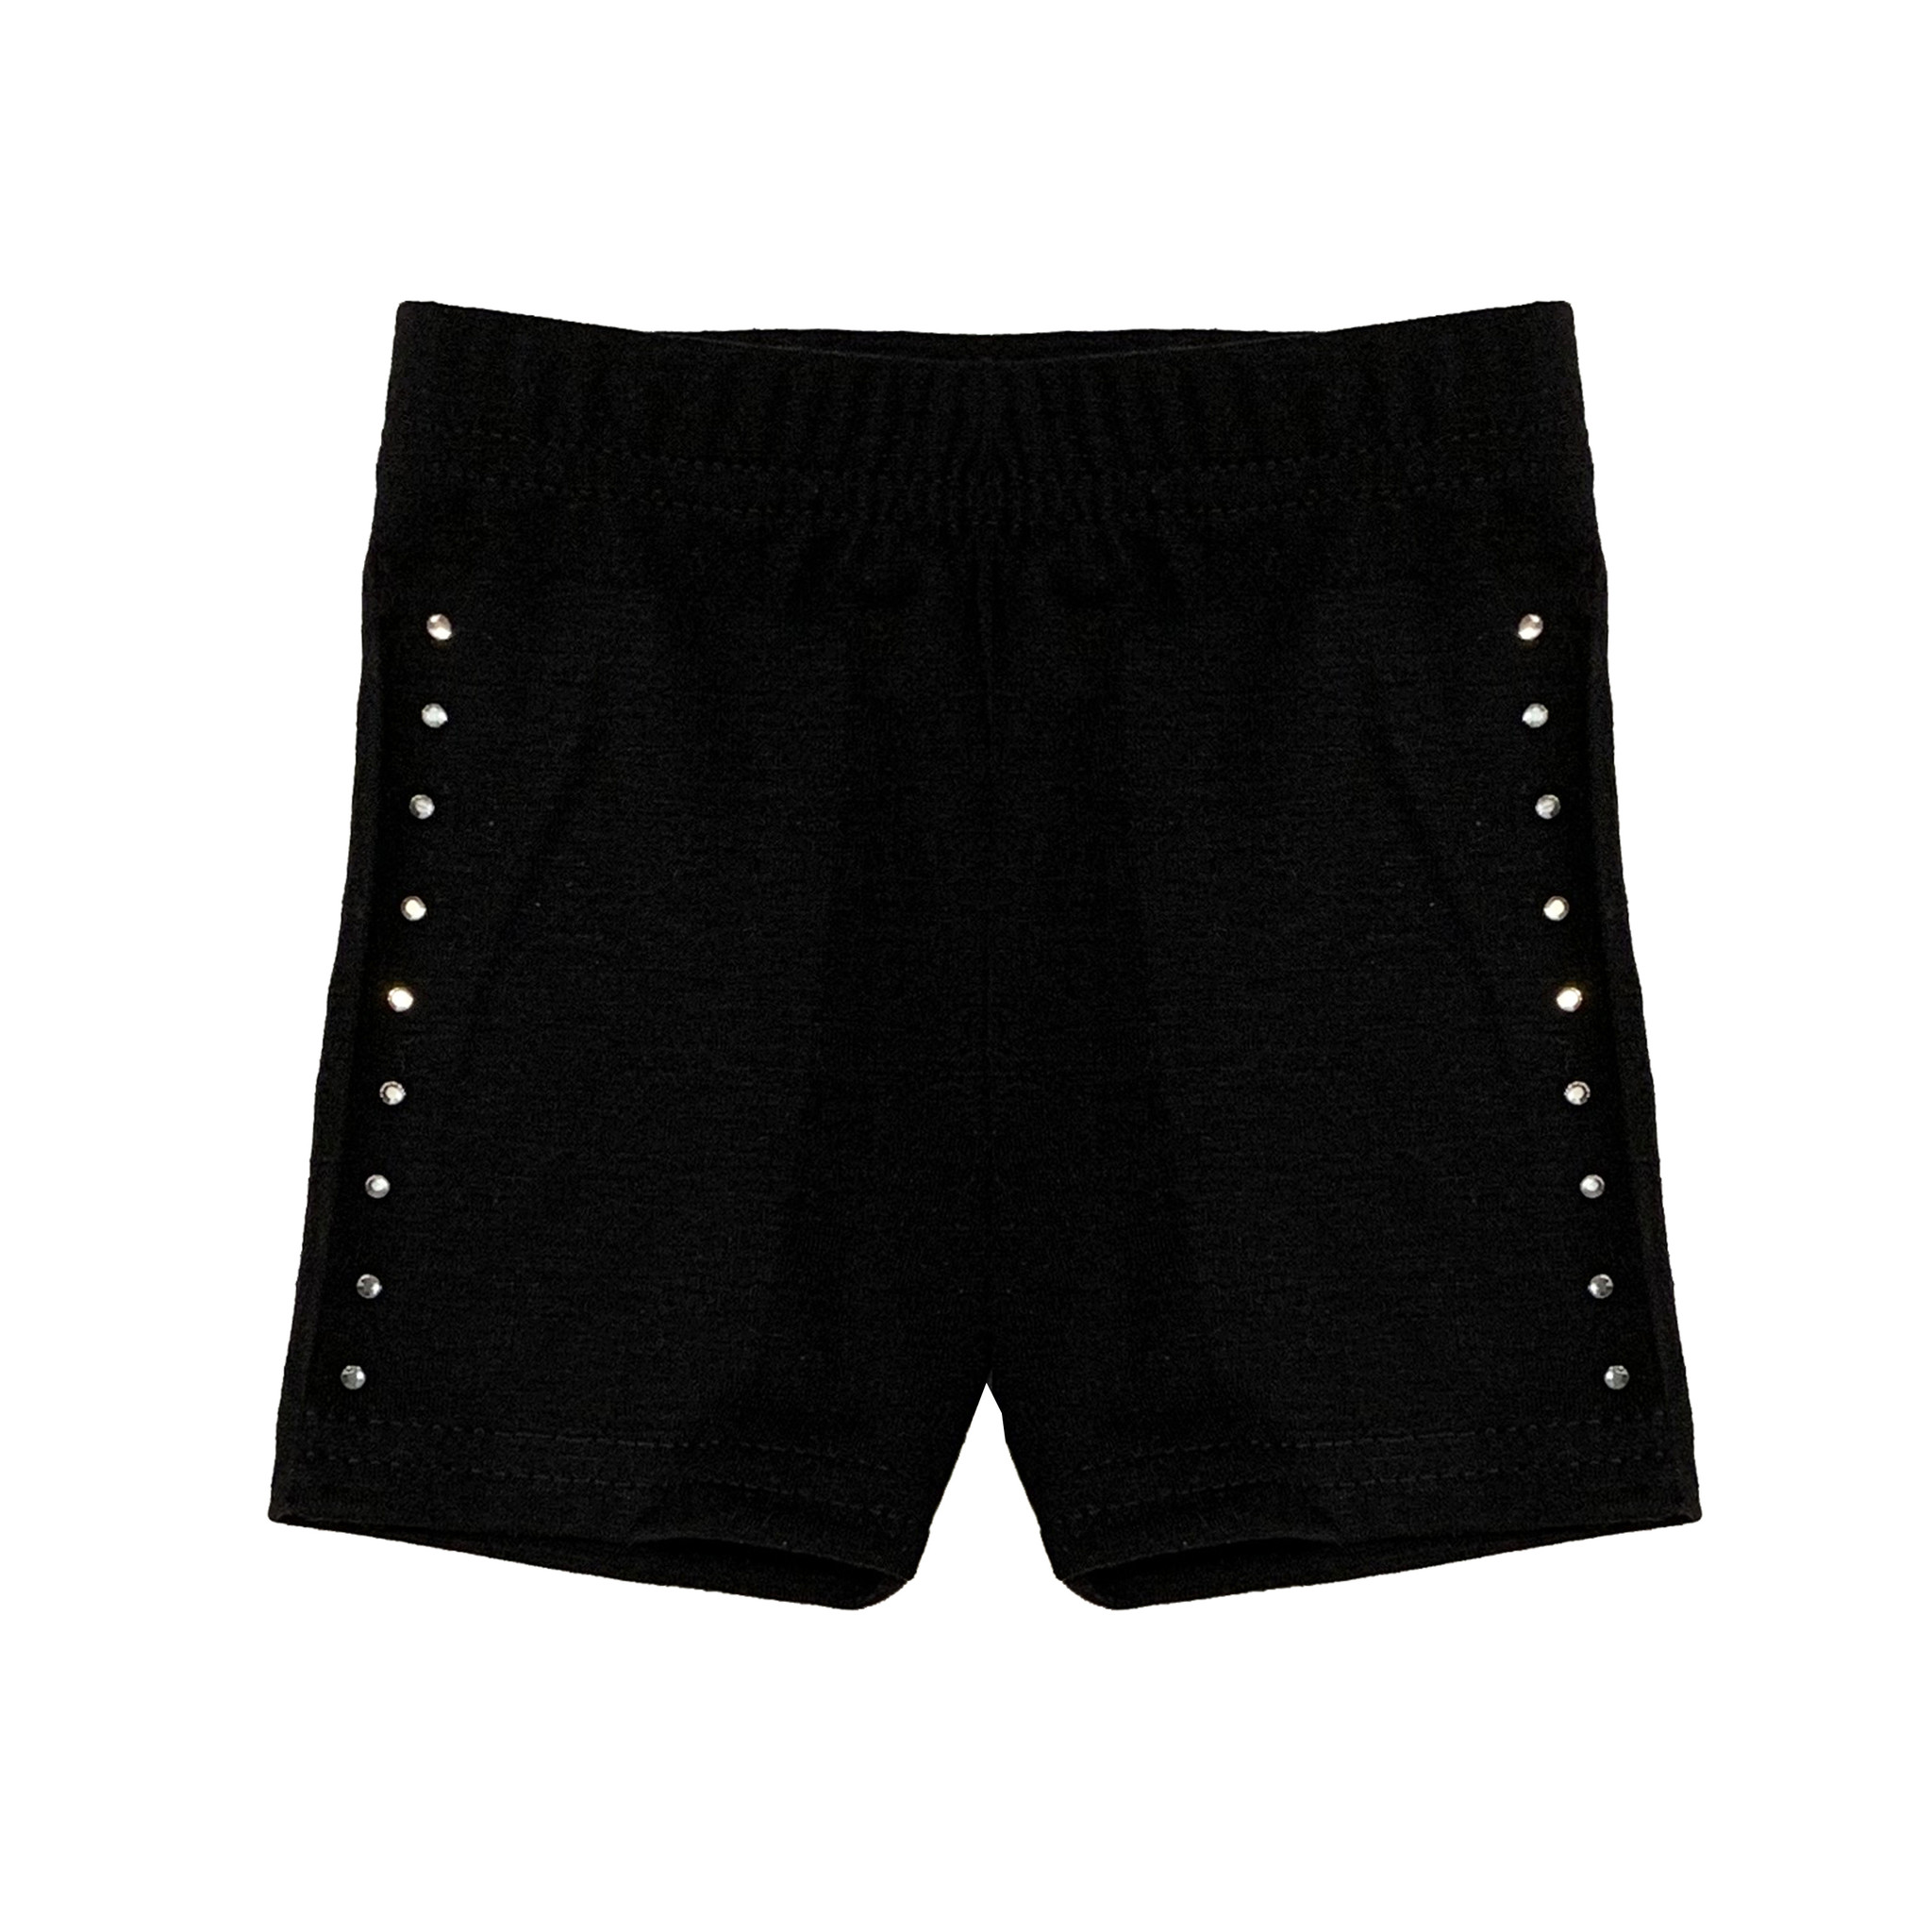 Small Change Black Rhinestone Bike Short